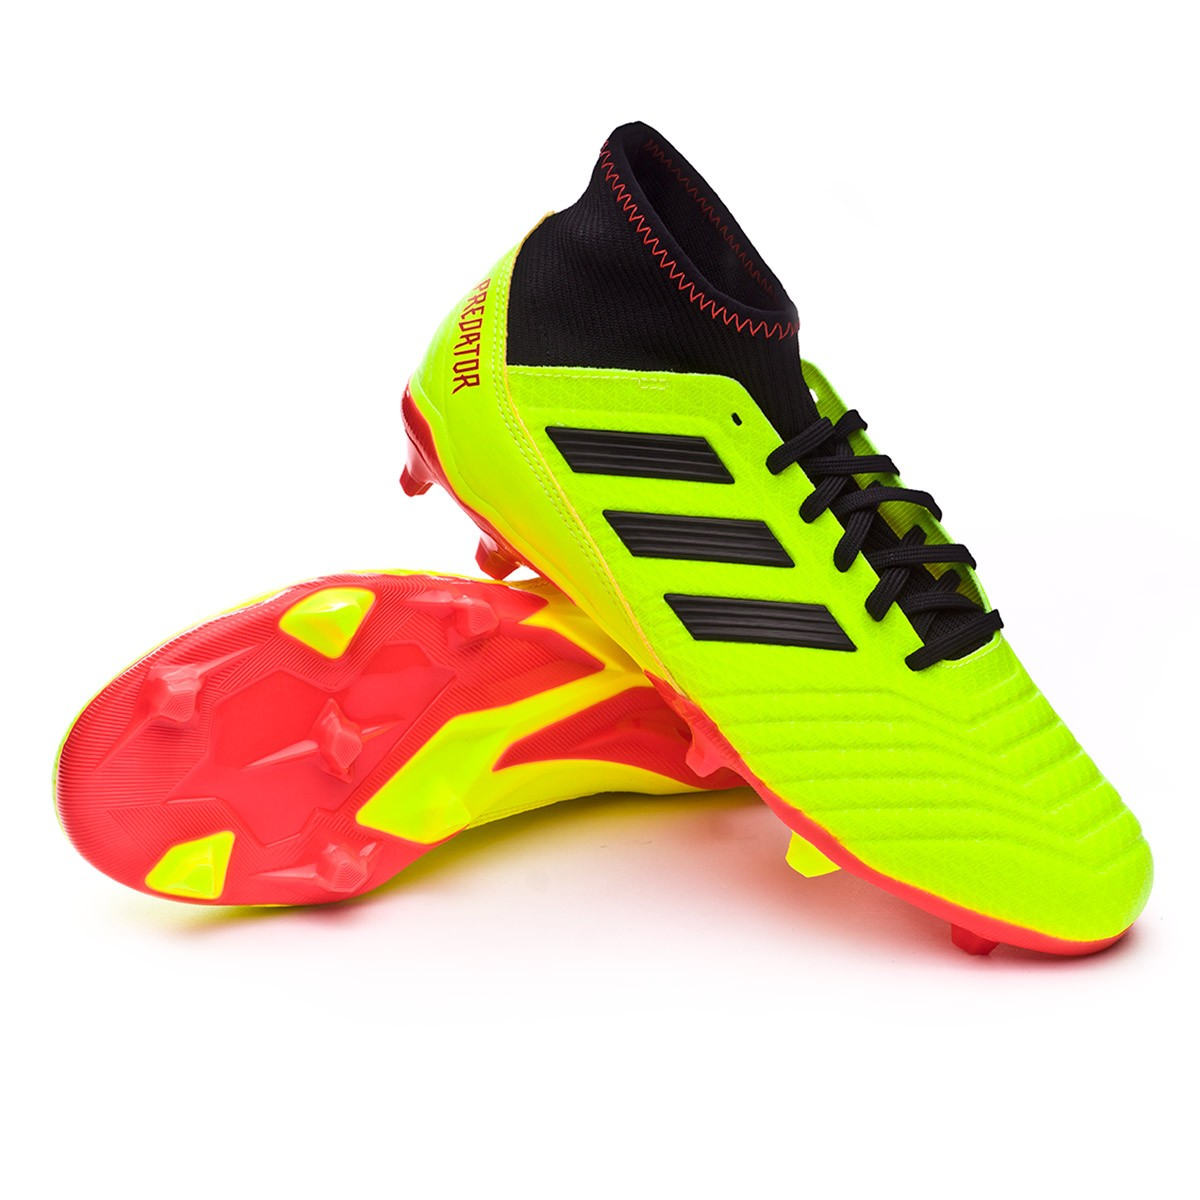 e03bf87a9538 Football Boots adidas Predator 18.3 FG Solar yellow-Black-Solar red ...